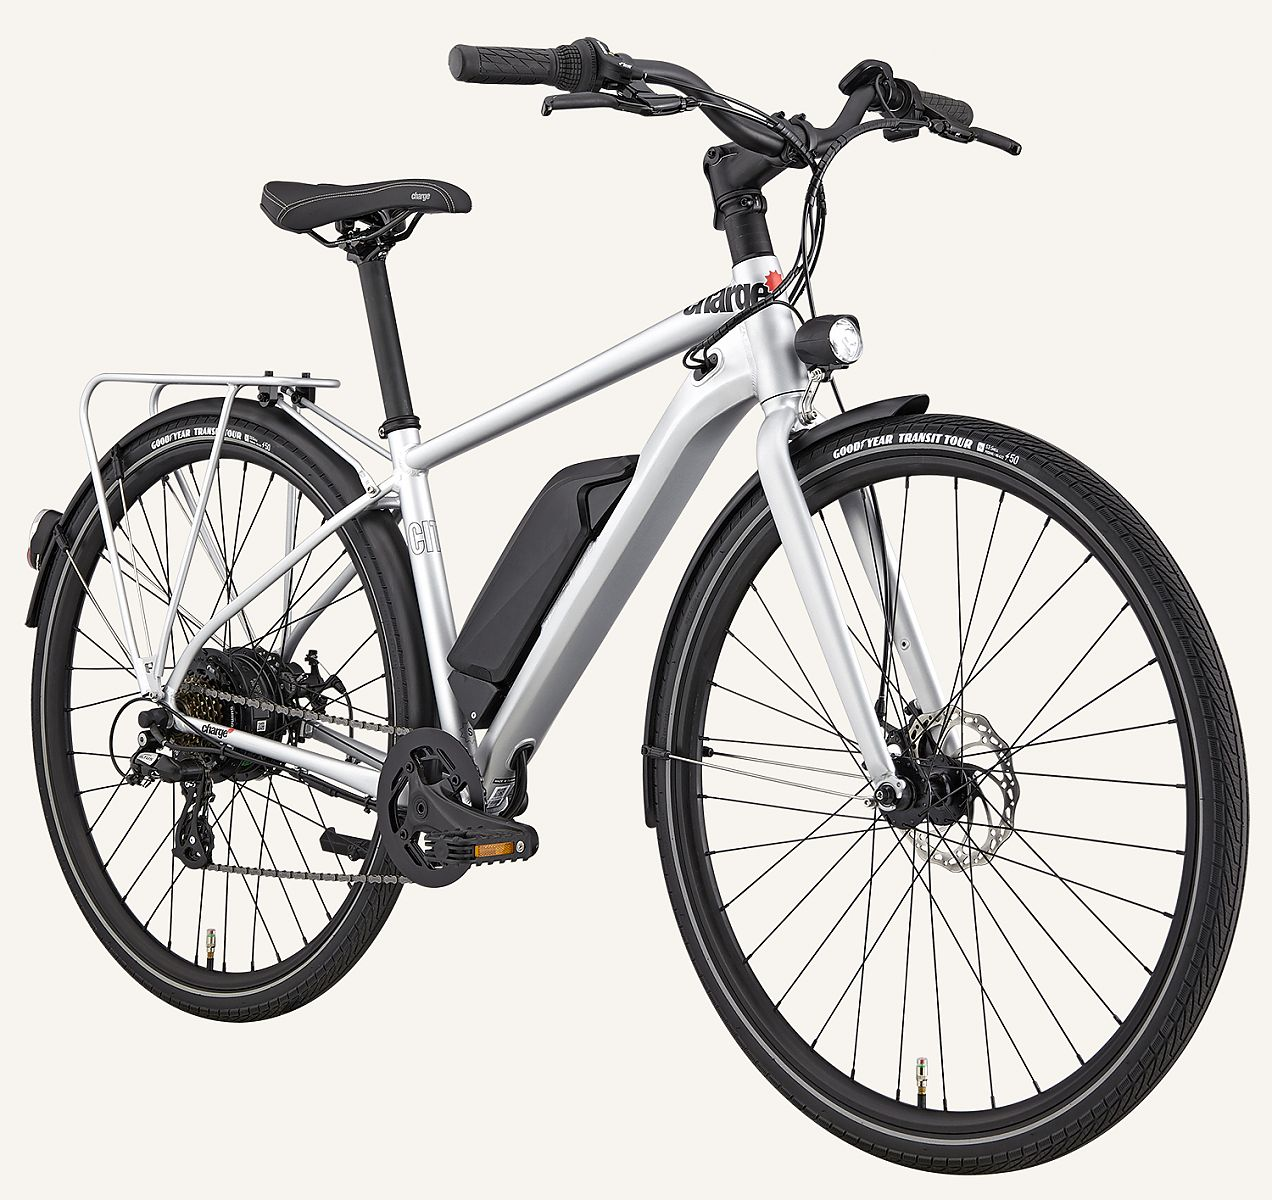 https://www.bicycleretailer.com/sites/default/files/styles/colorbox_popup/public/images/article/gallery/city_silver.jpg?itok=2Zh6CqO7